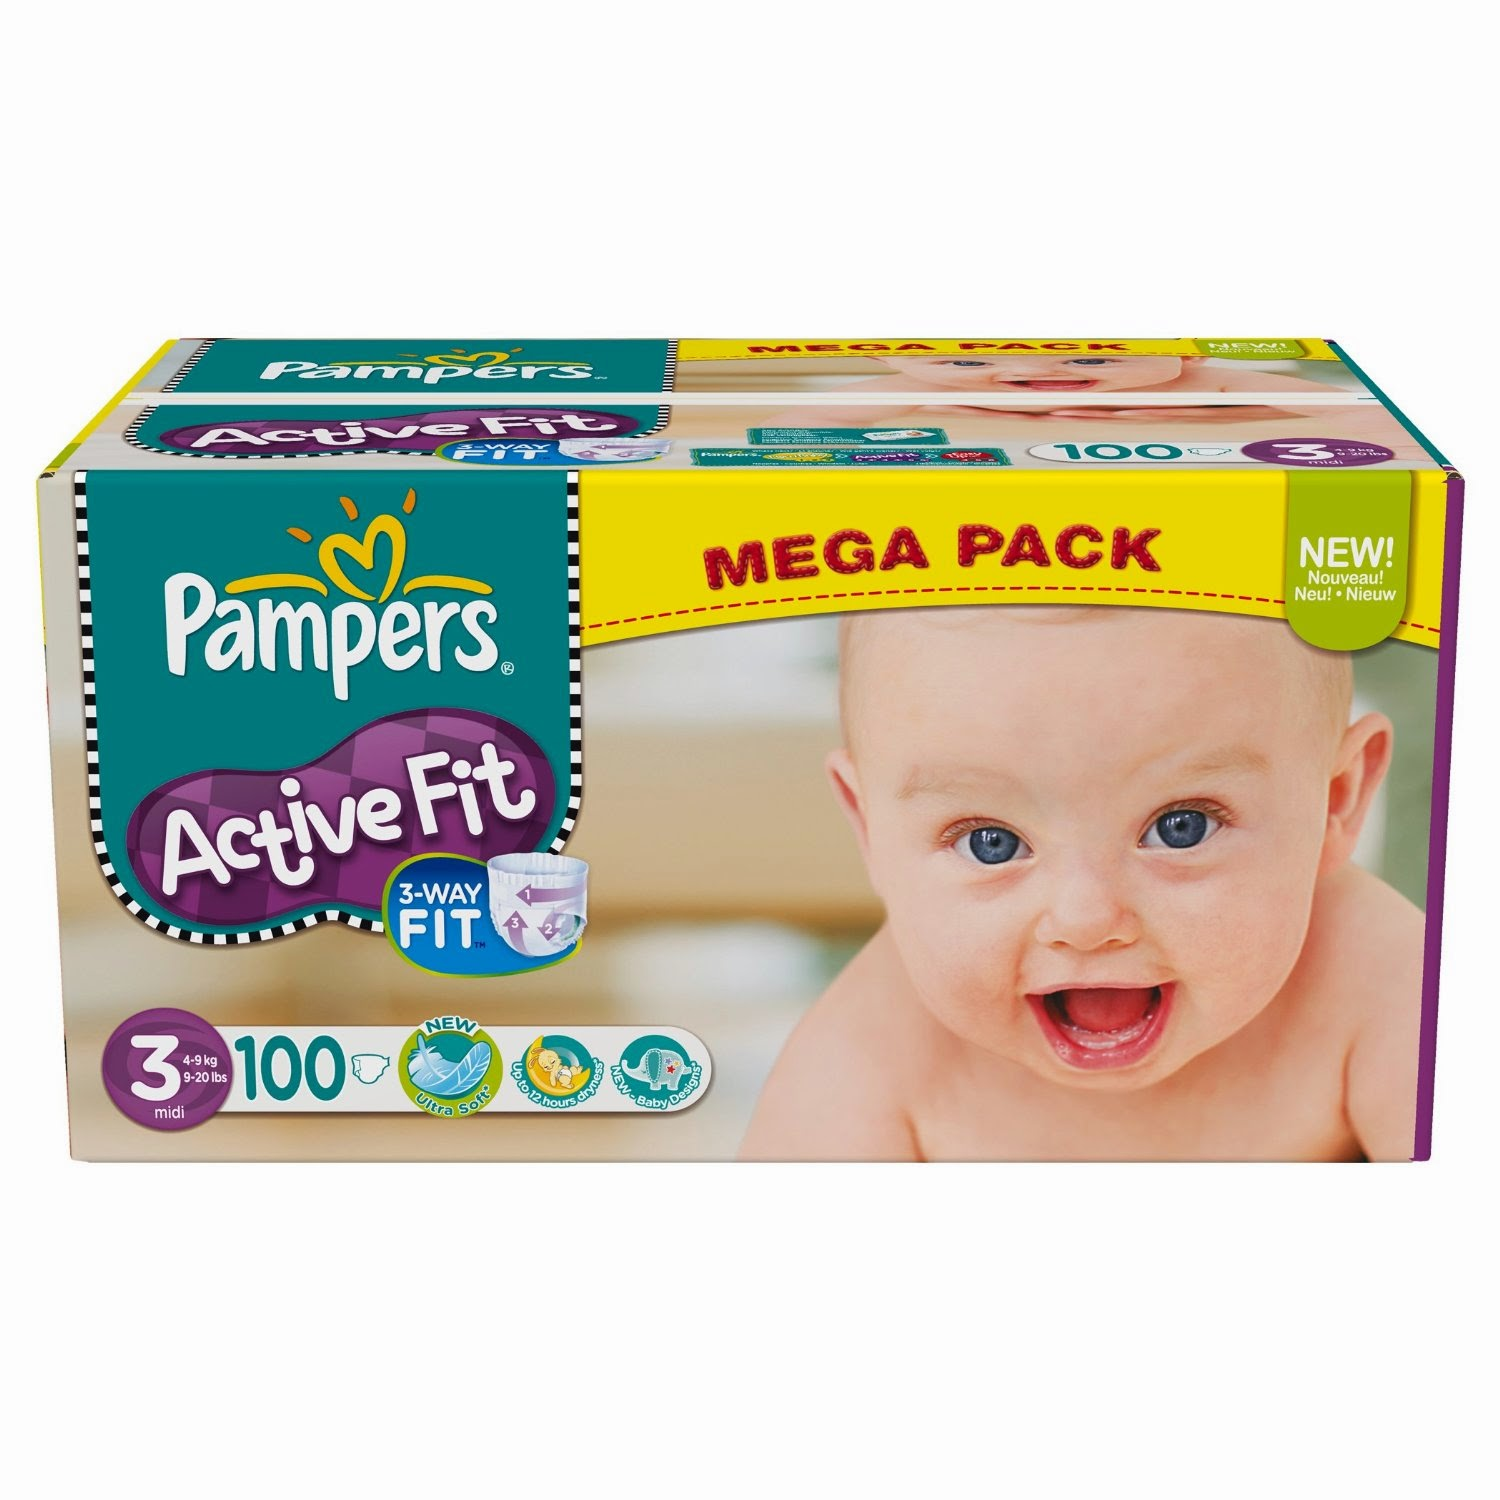 Promo couches pampers pas cher tailles 3 4 et 5 active fit promotions 2018 - Couches pas cher taille 2 ...